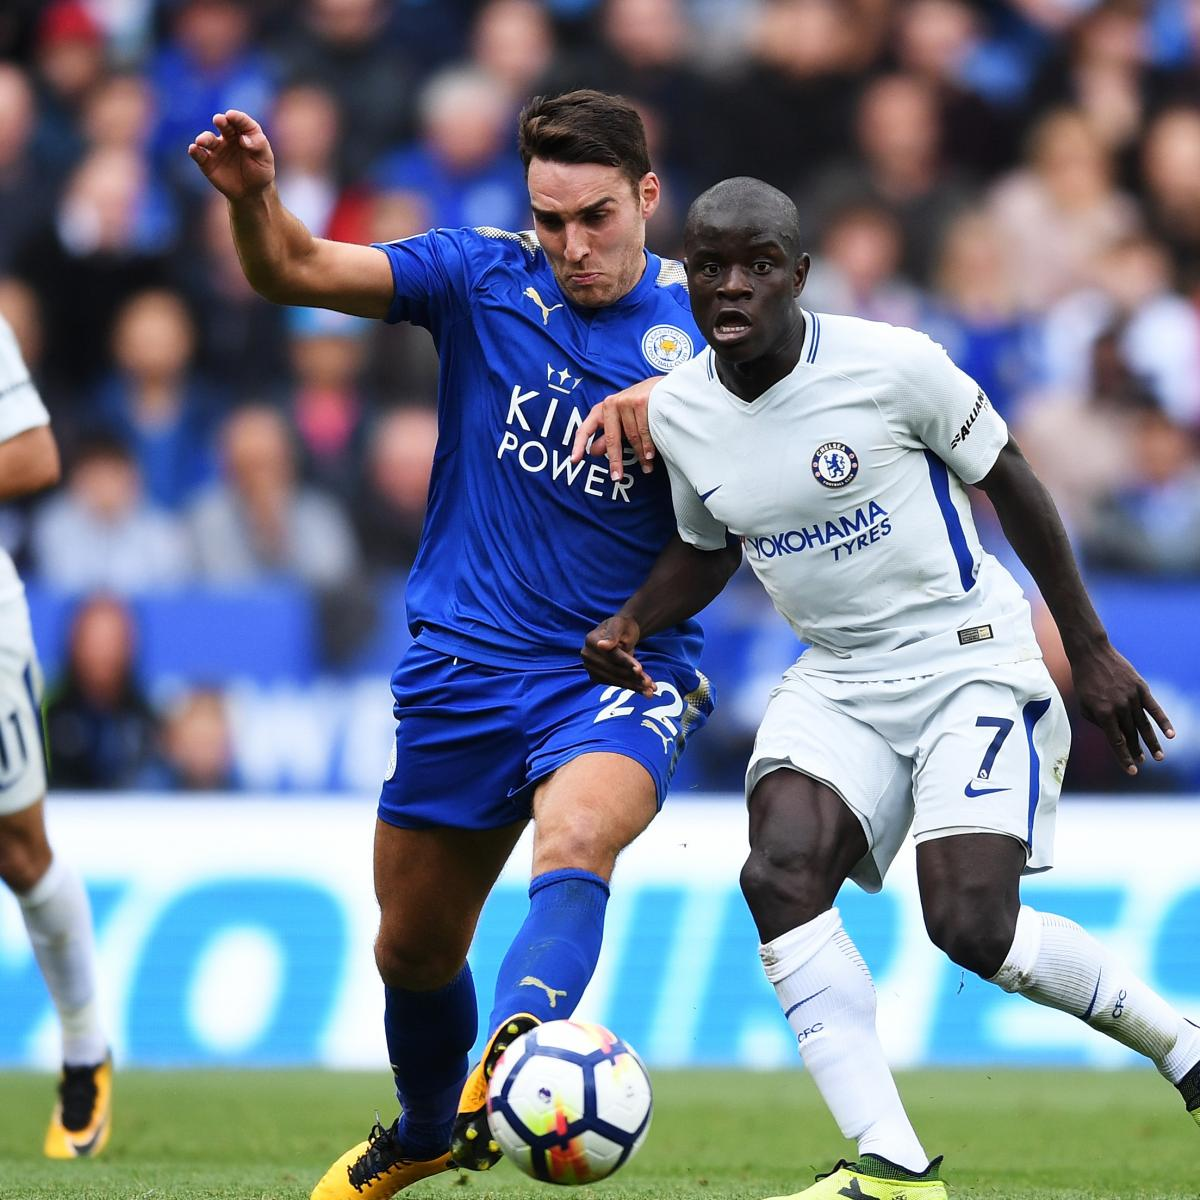 Chelsea vs. Leicester City: Team News, Preview, Live Stream, TV Info